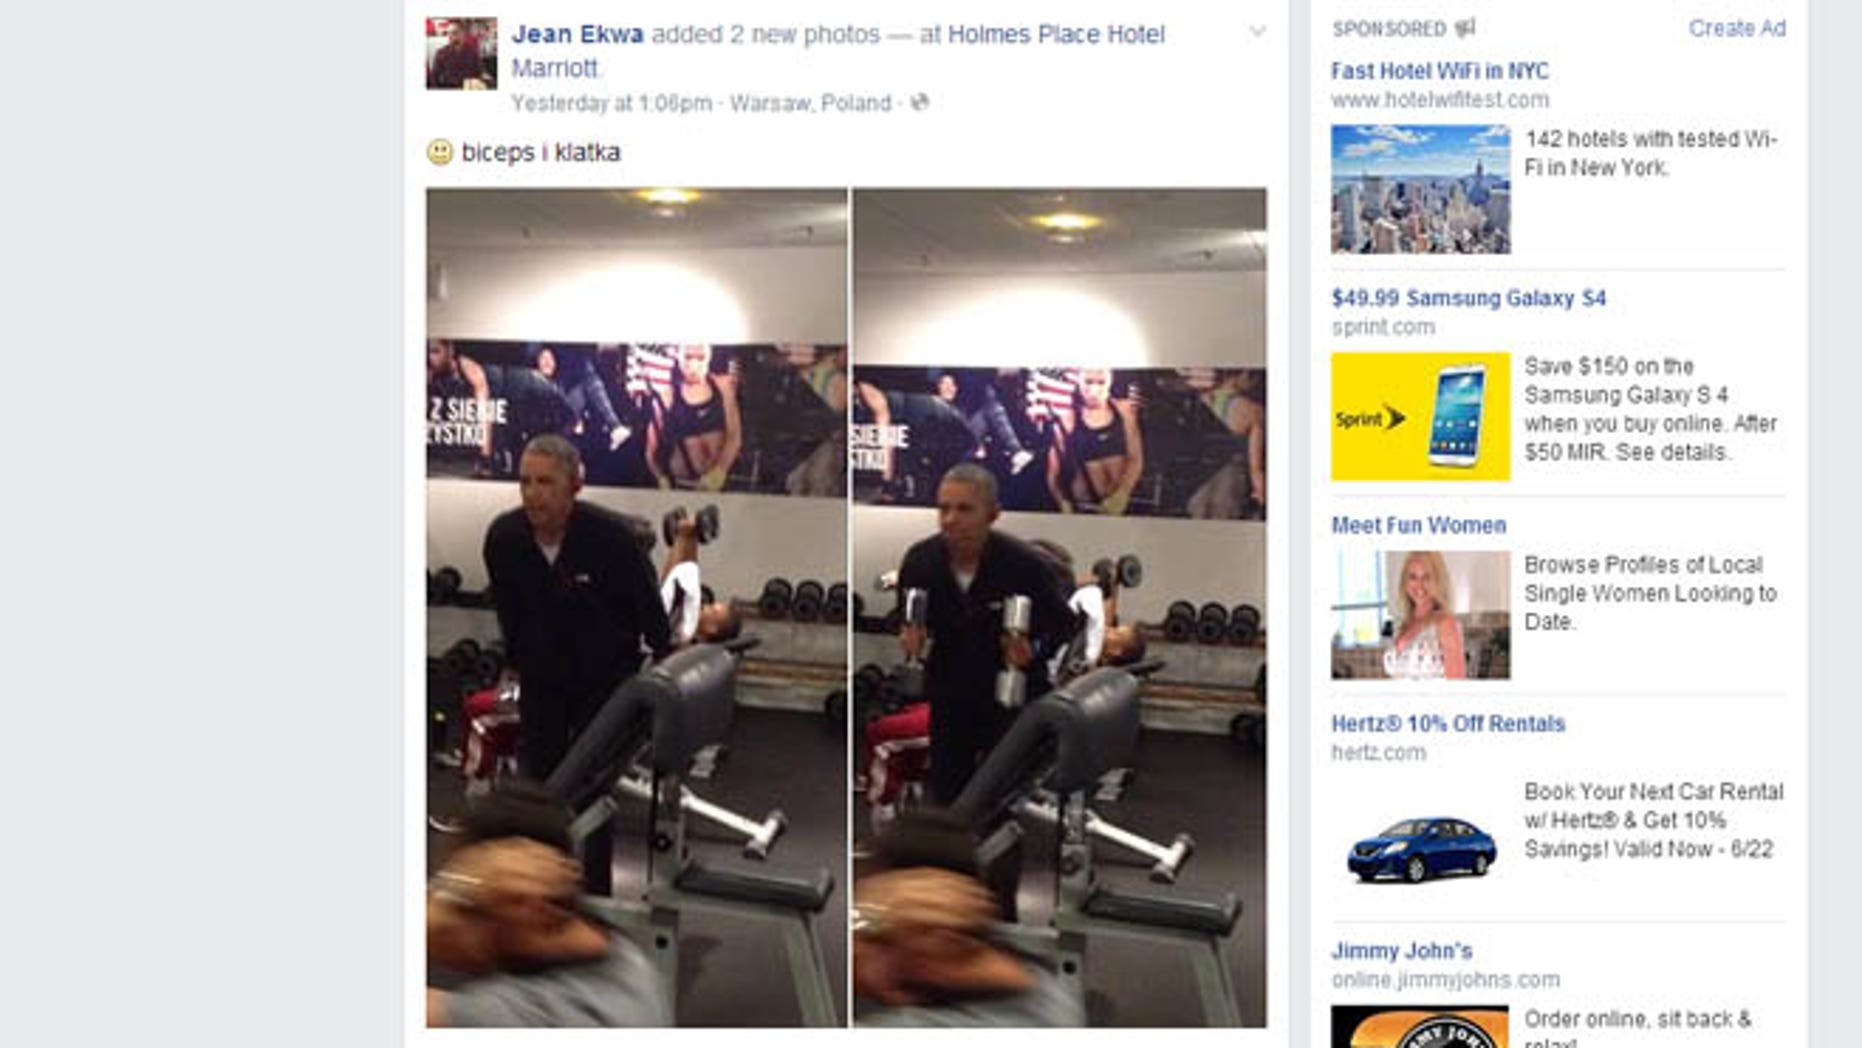 Shown here are images posted to Facebook of President Obama working out in Poland.